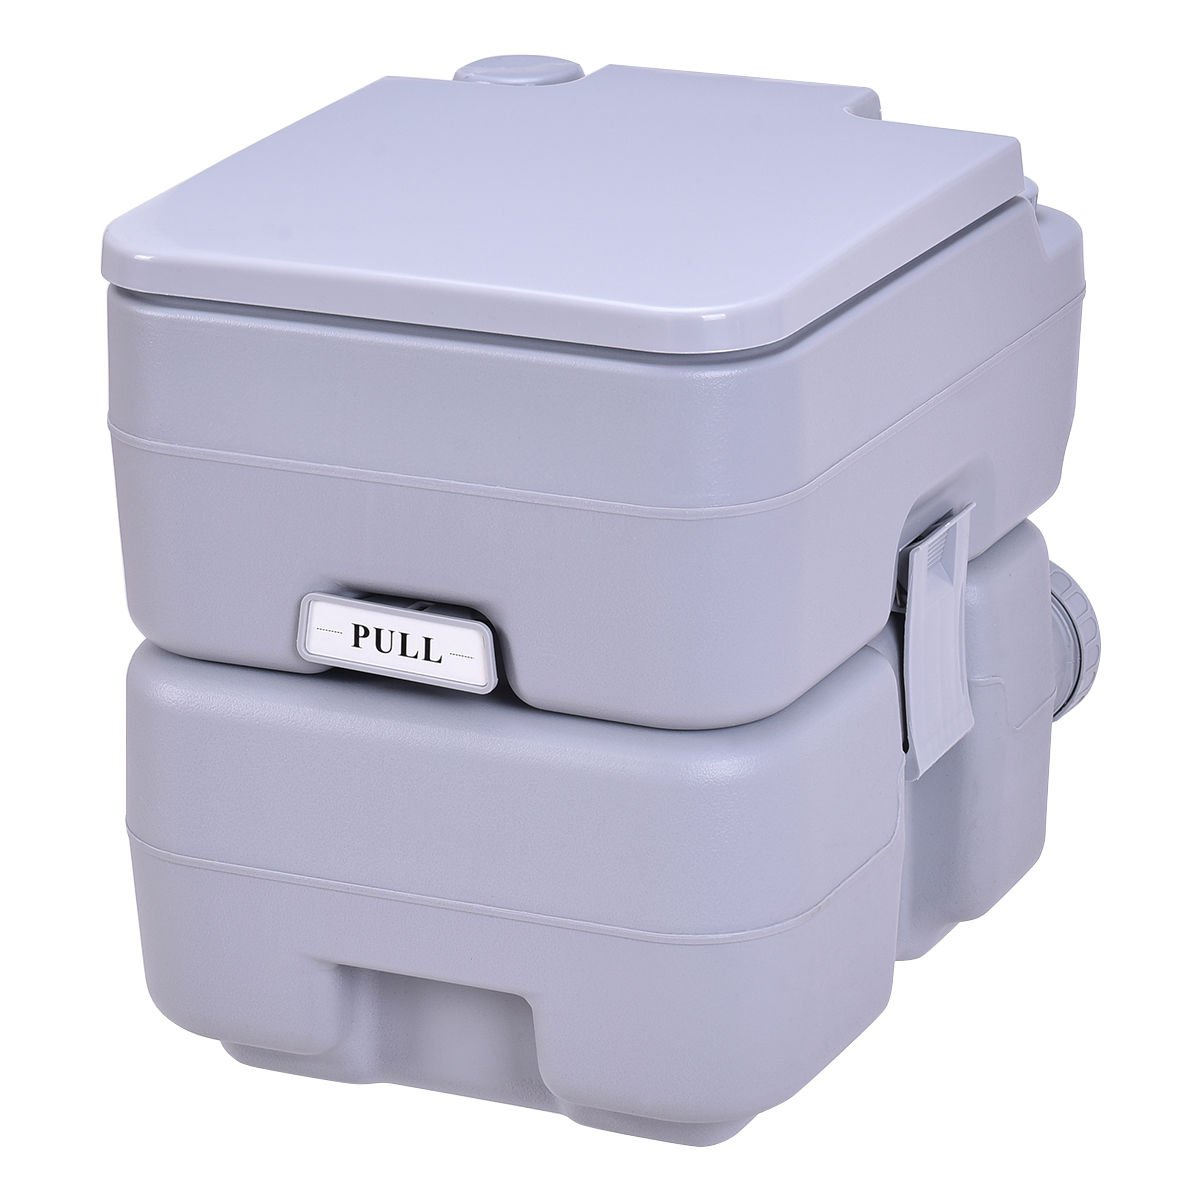 Gray 20L Easy Carry & Clean Portable TravelFlush Toilet Adult Sized Seat w/ Secure Clamps & Latches